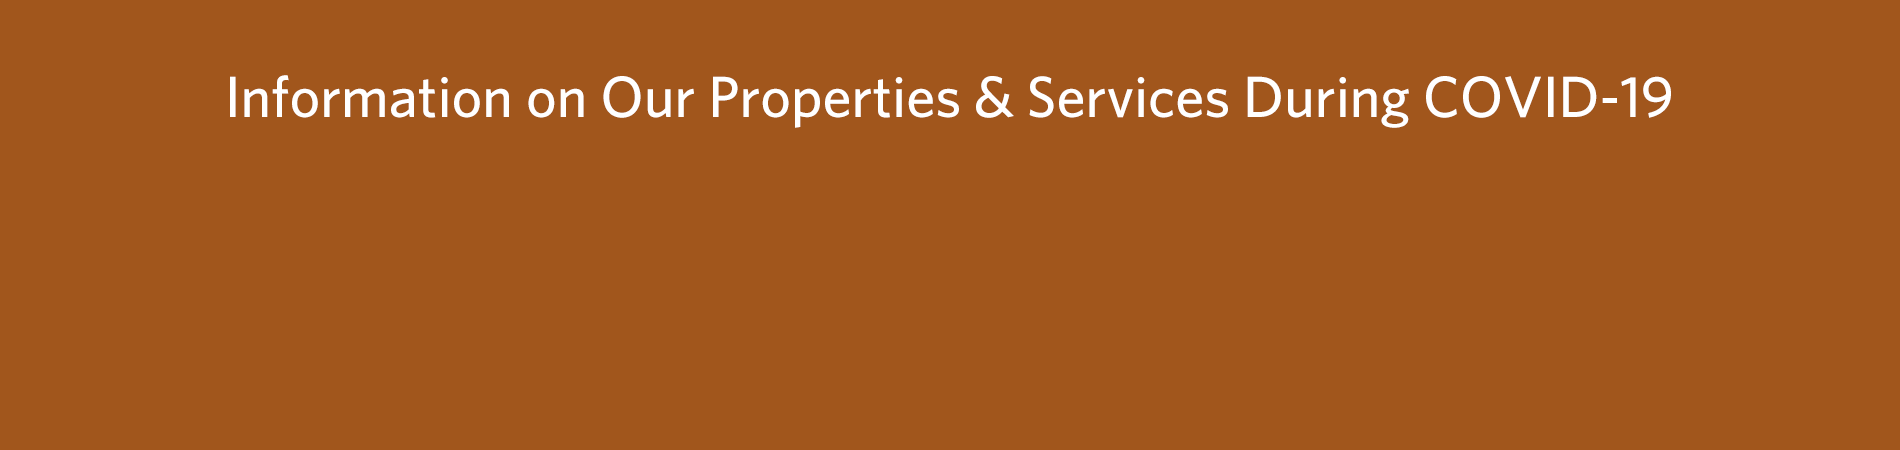 Information on our properties and services during COVID-19